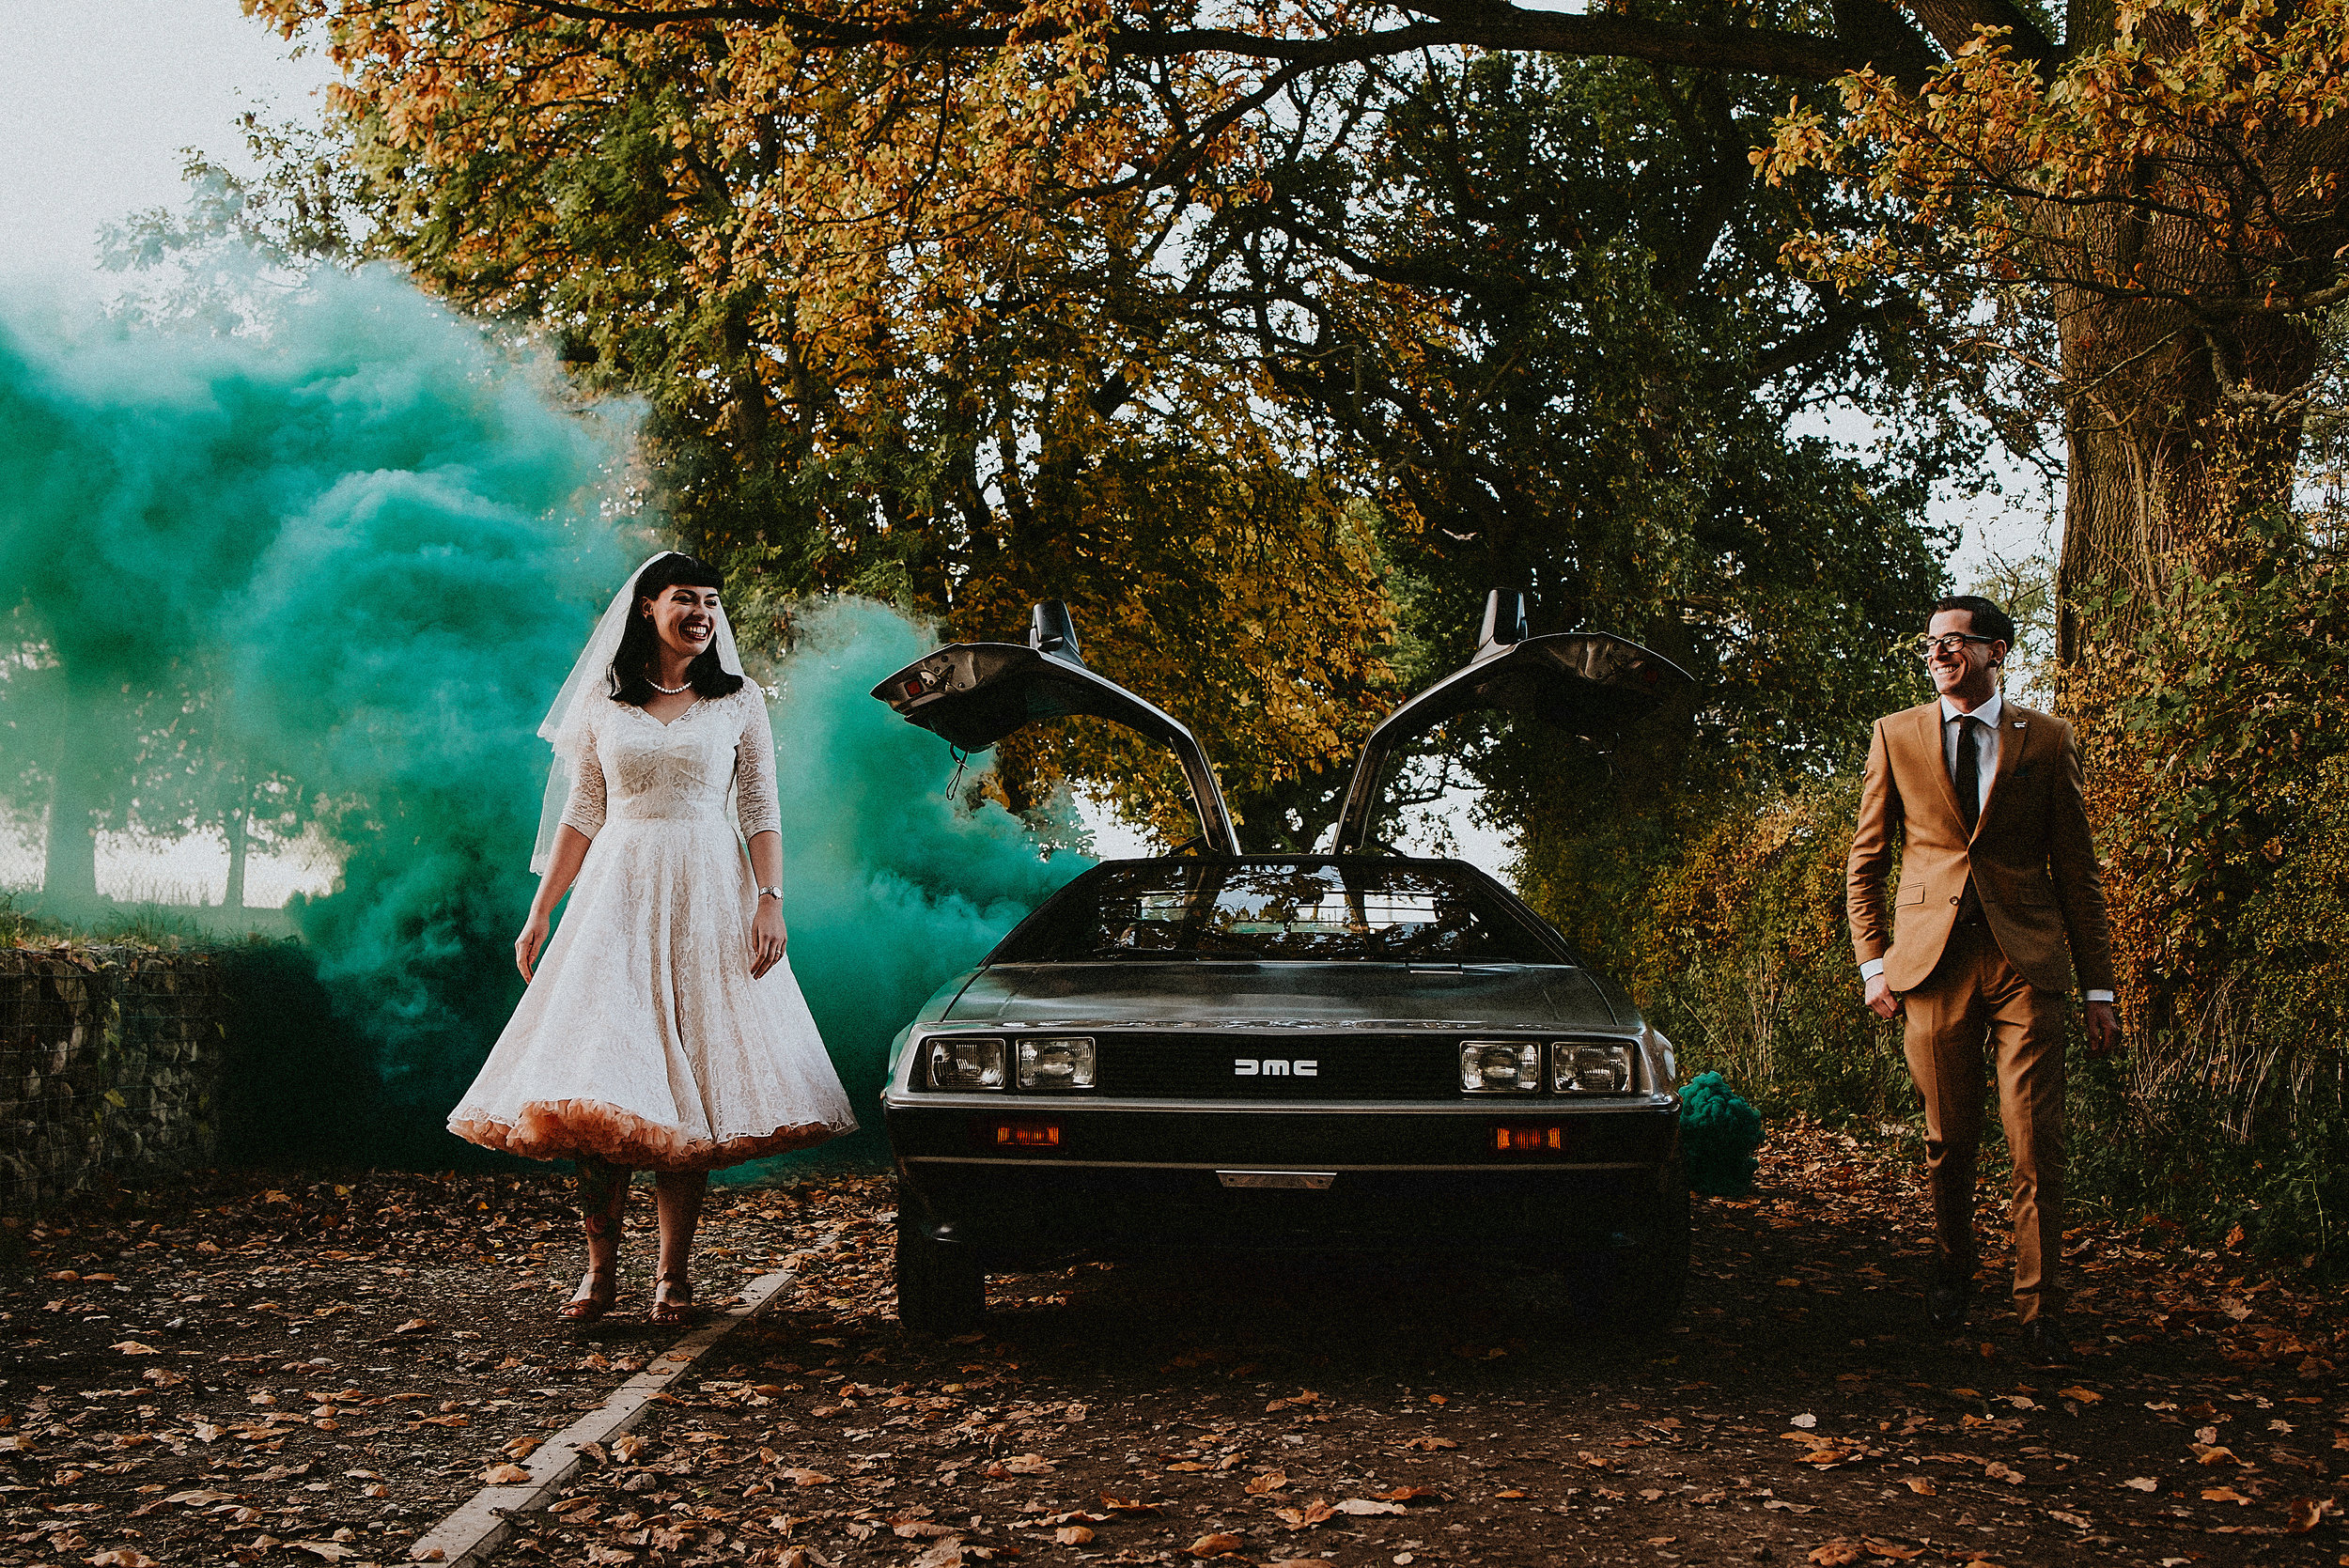 With Autumnal Colours, a Delorean Owned By the Groom & a Party to End All Parties. This Thorner Victory Hall Wedding Brings Charlotte & John right back to the Future. Featured on Rock N' Roll Bride.